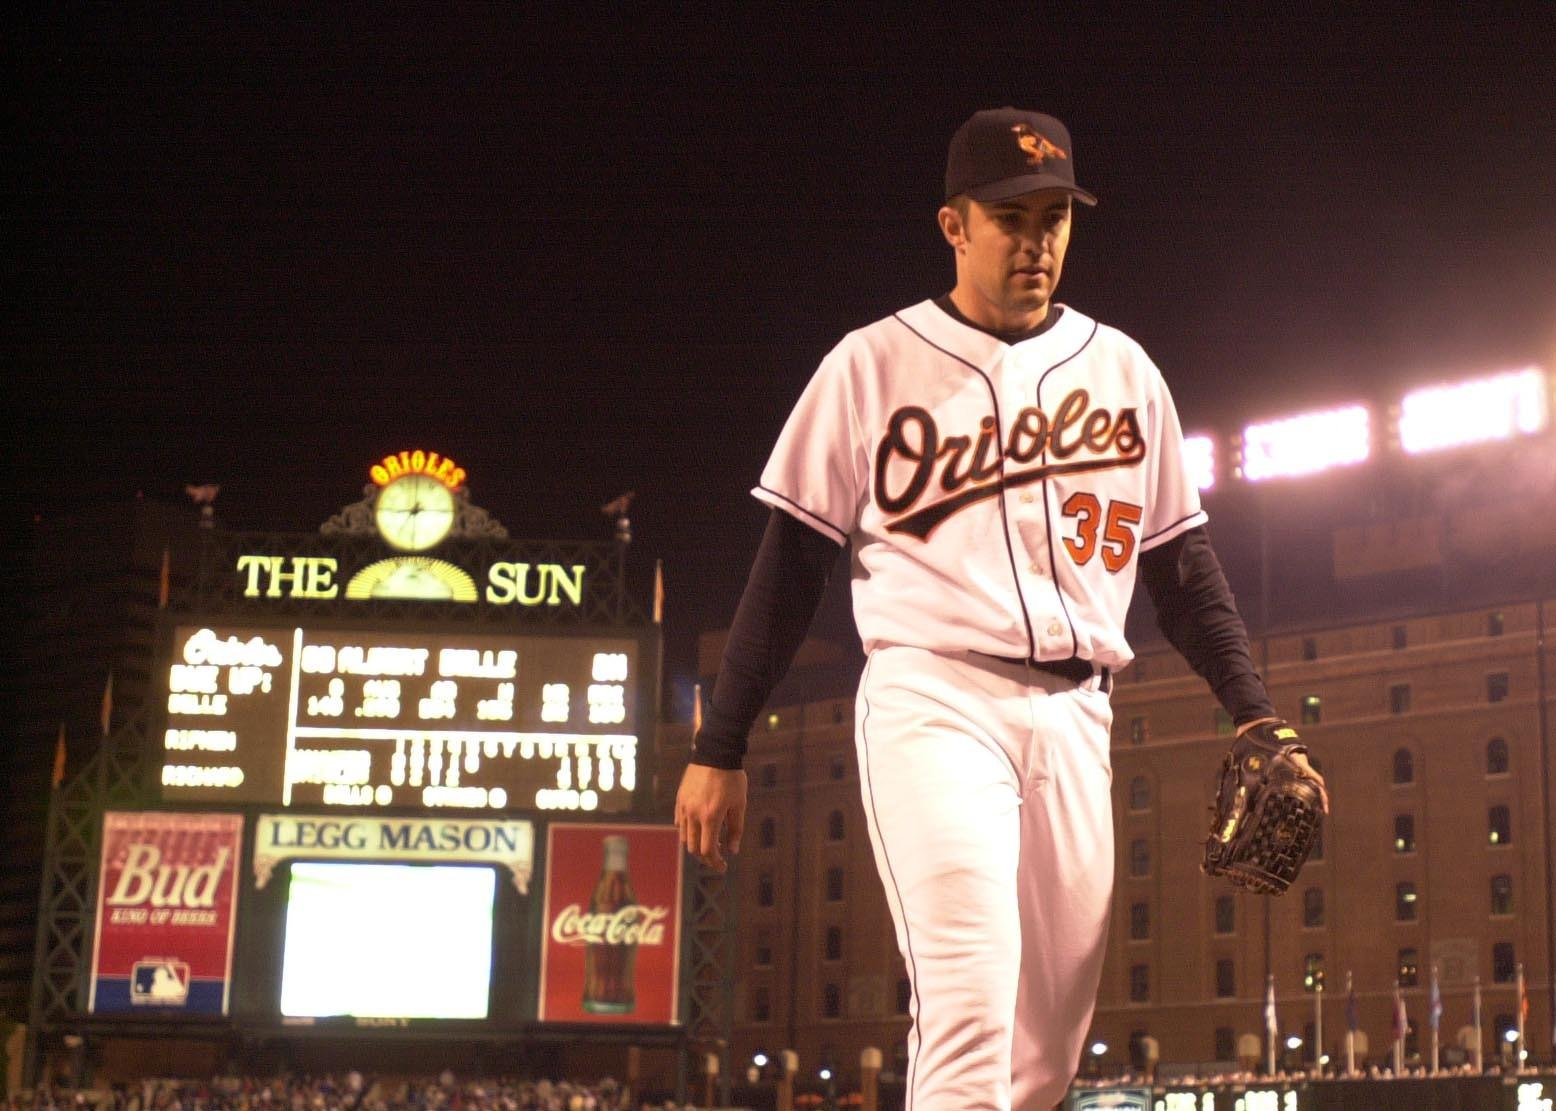 Mike Mussina exits the field between innings in his last game as an Oriole.